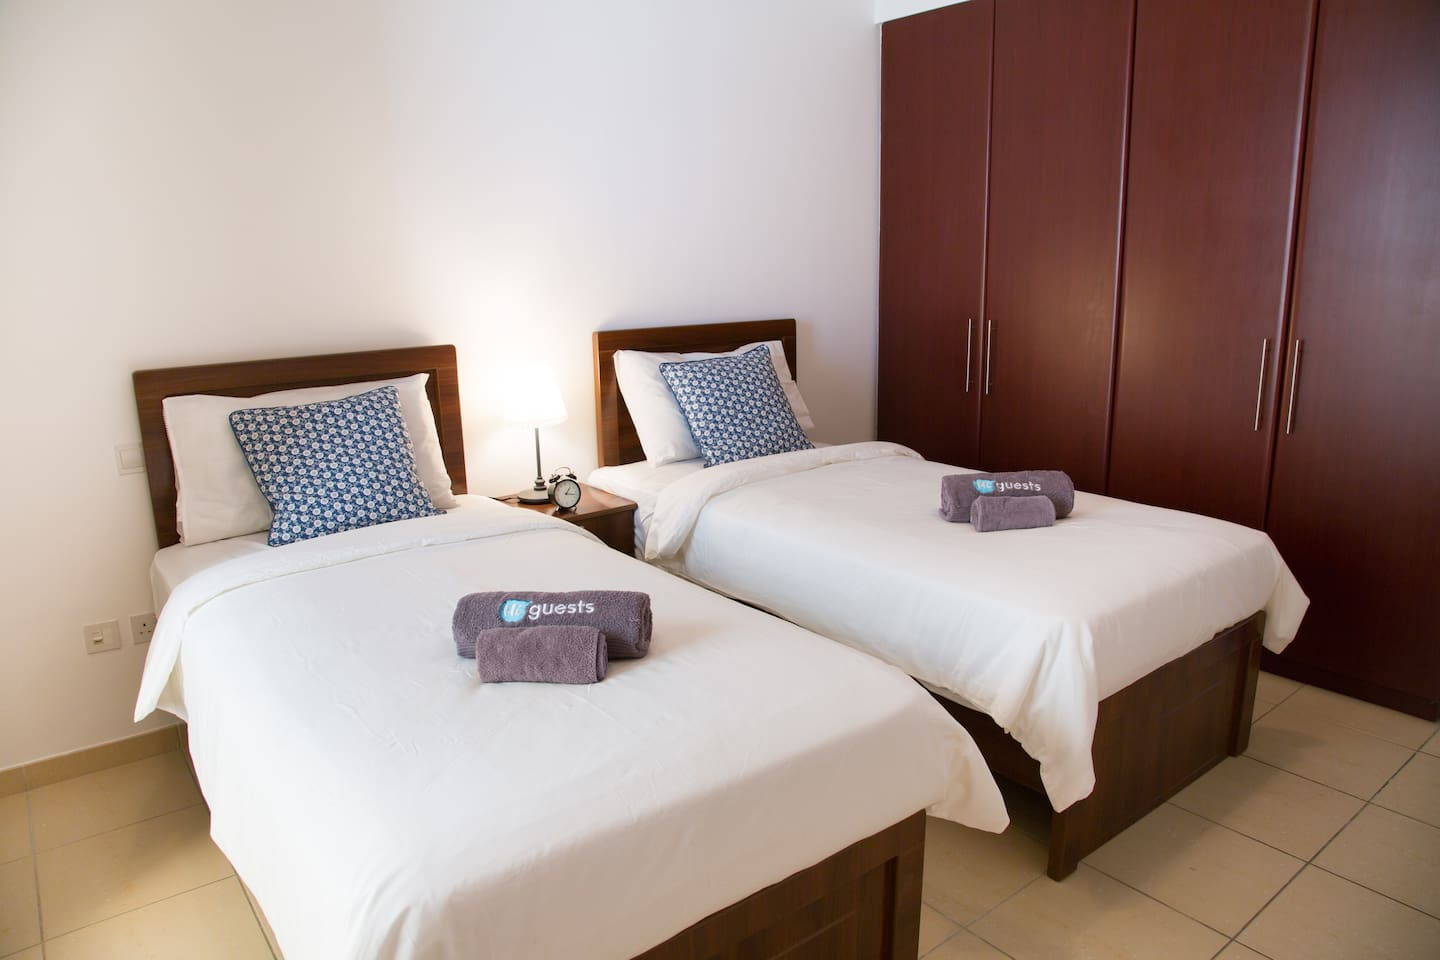 A bedroom with 2 single beds